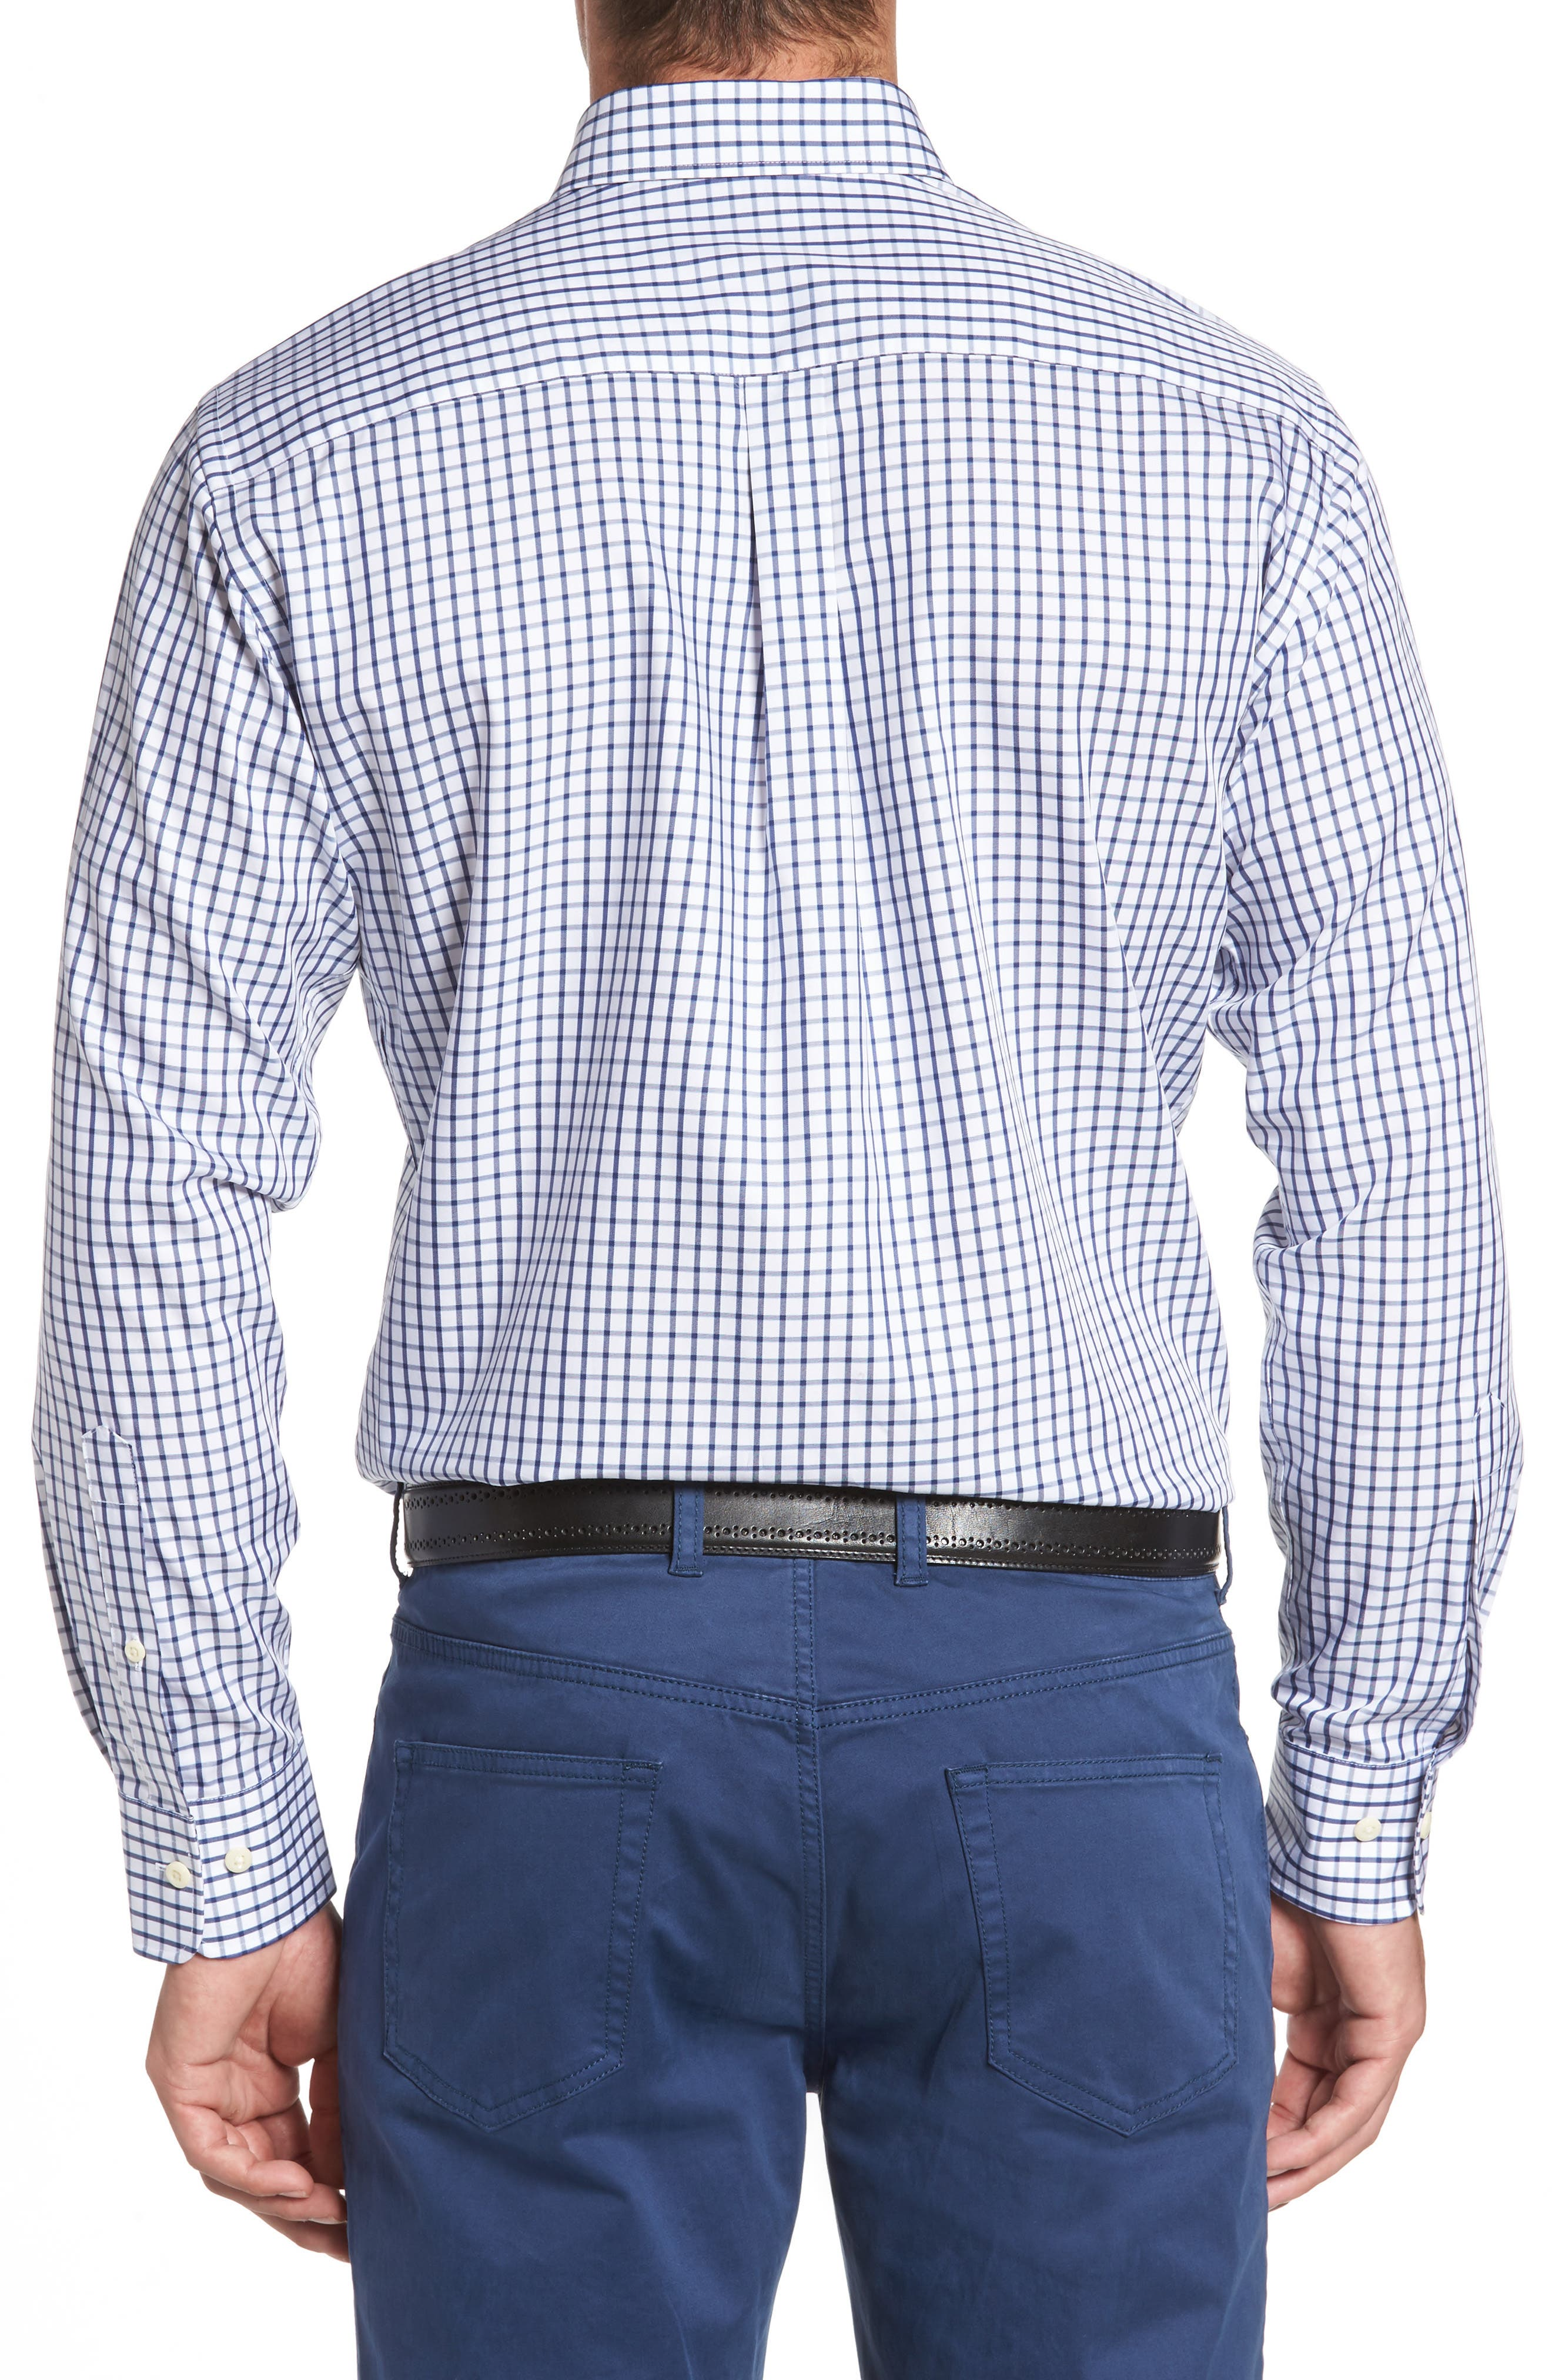 Crown Soft Nevada Tattersall Sport Shirt,                             Alternate thumbnail 2, color,                             400